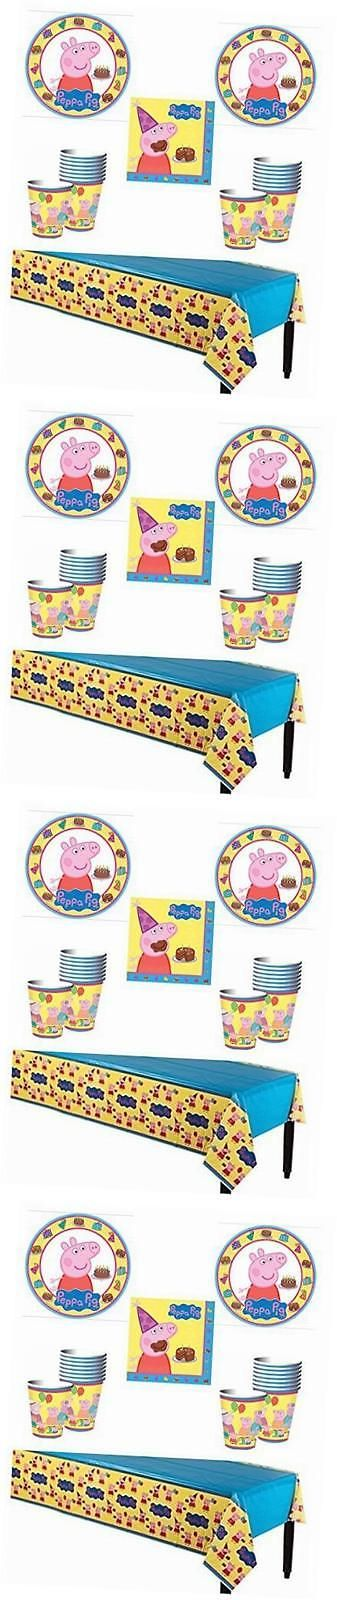 Complete Party Sets and Kits 26394: Peppa Pig Deluxe Party Supply Pack For 16 Guests -> BUY IT NOW ONLY: $31.9 on eBay!